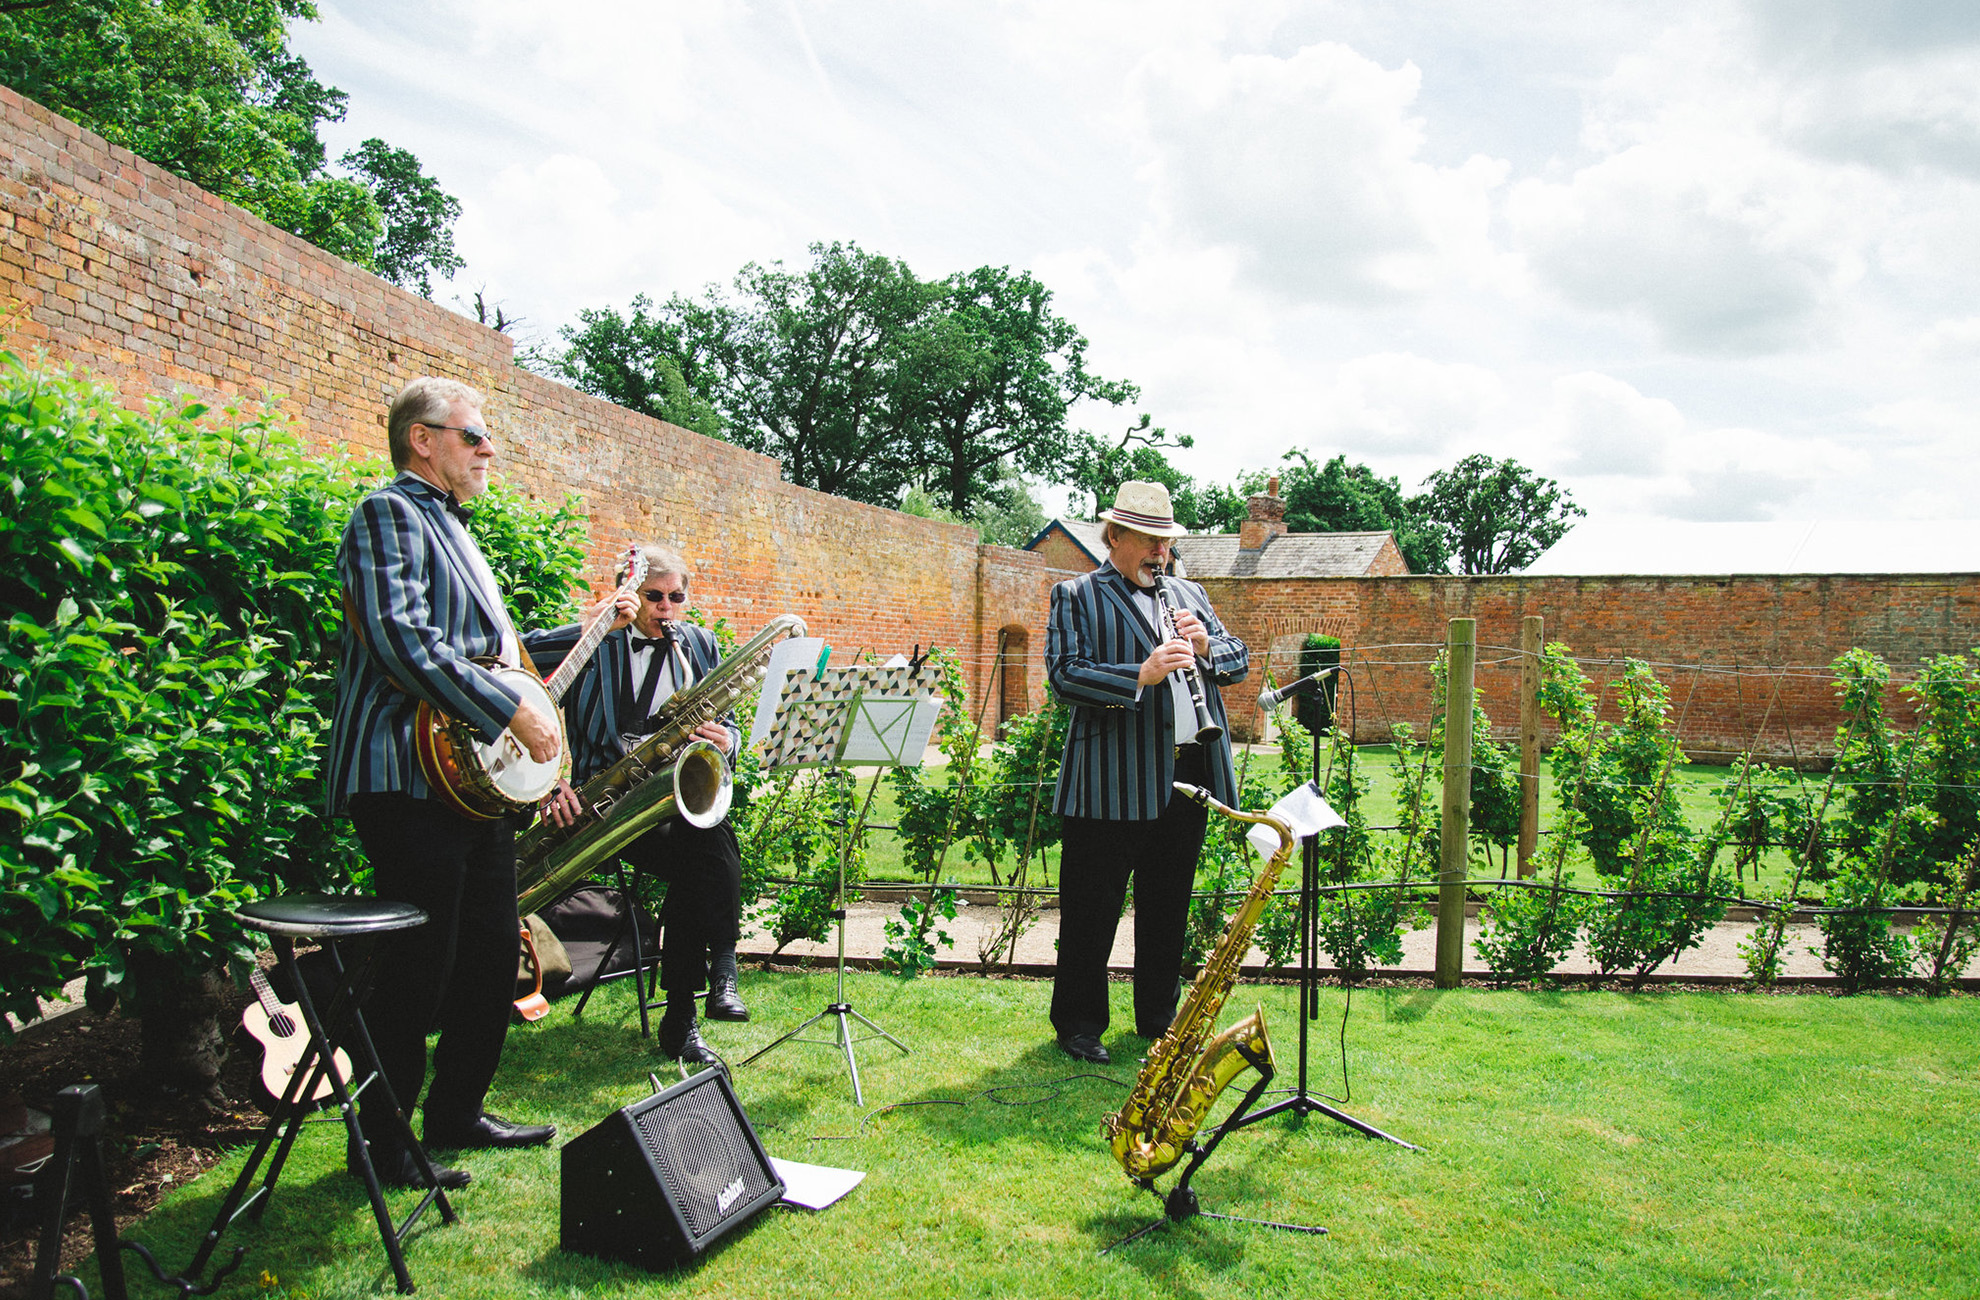 A wedding band play in the fruit tree maze during an outdoor drinks wedding reception at Combermere Abbey